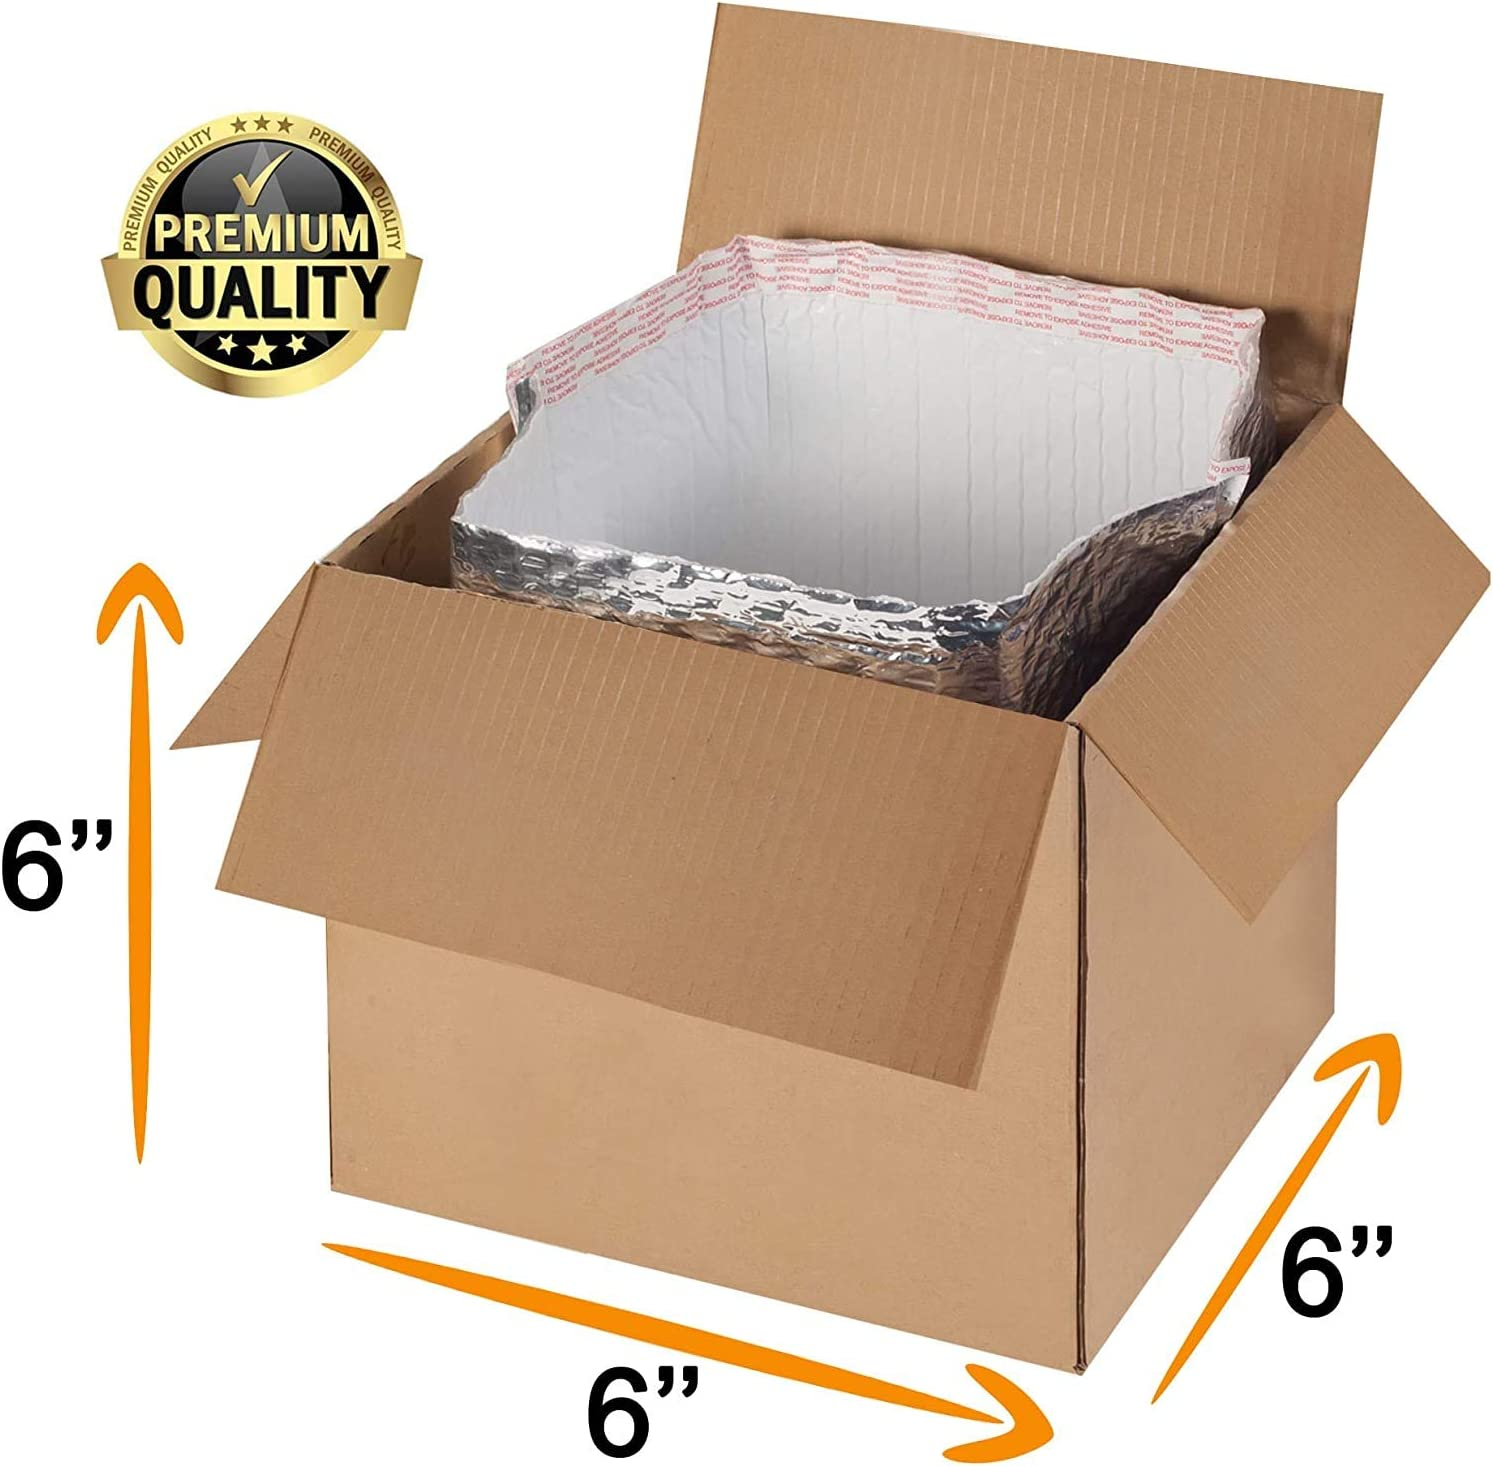 Pack of 5 Thermal Insulation Bags 6x6x6 Metalized Box Liners Leak Resistant Foil Insulated Liners for Lunch Box Temperature Sensitive Products Gusseted Bottom Liners Wholesale Price.